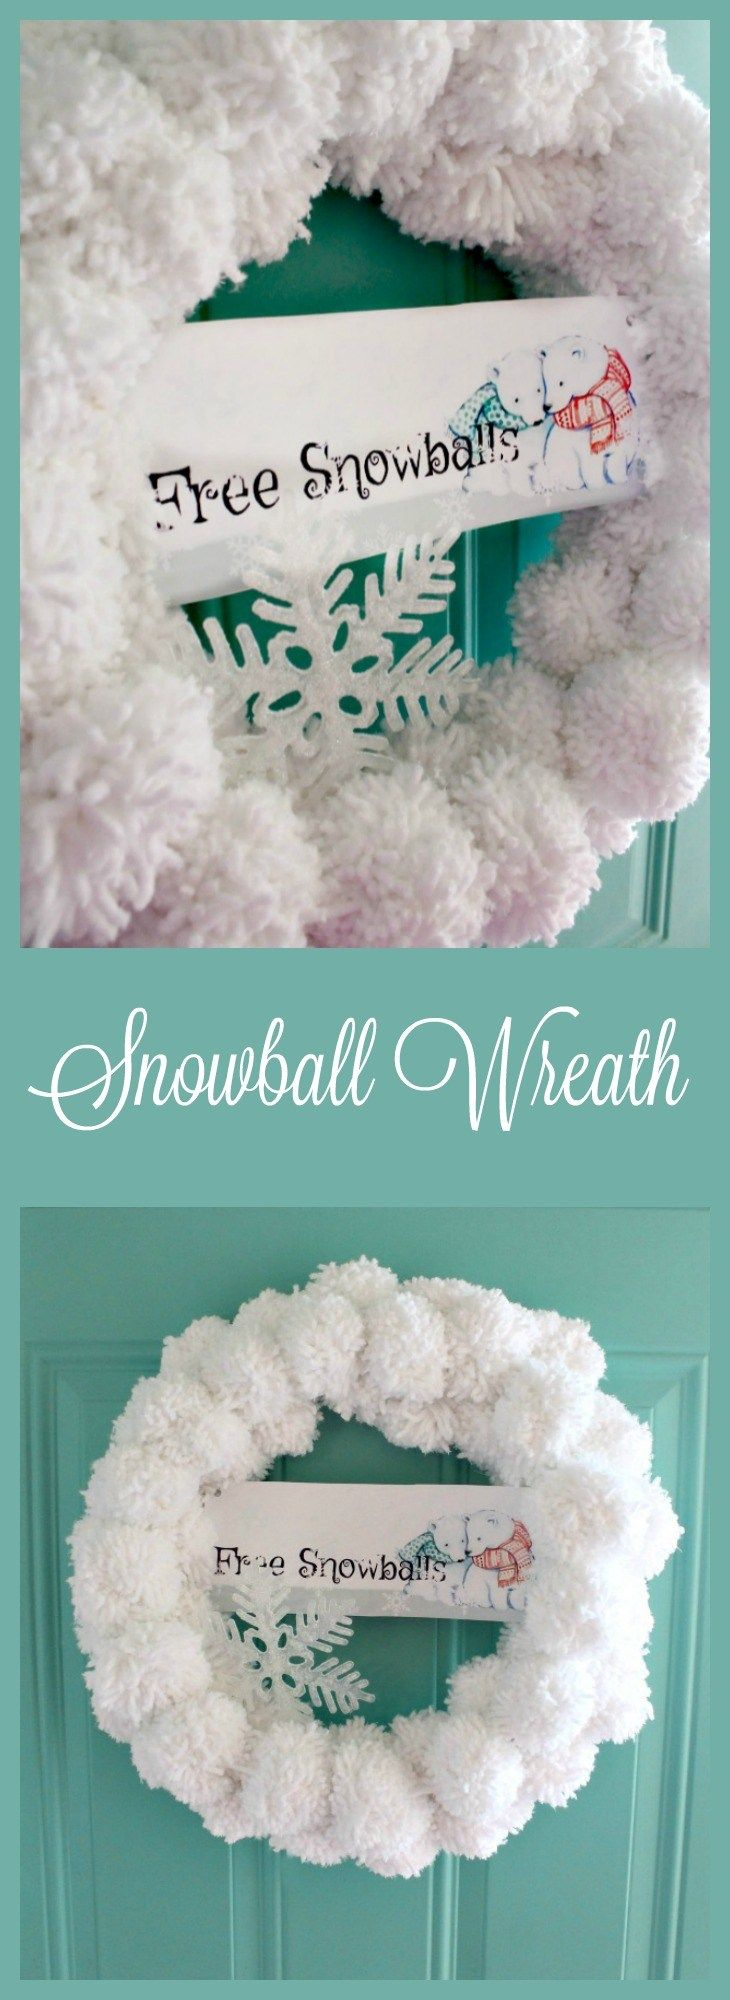 12 Days of Christmas - DIY Snowball Wreath | Coronas ...